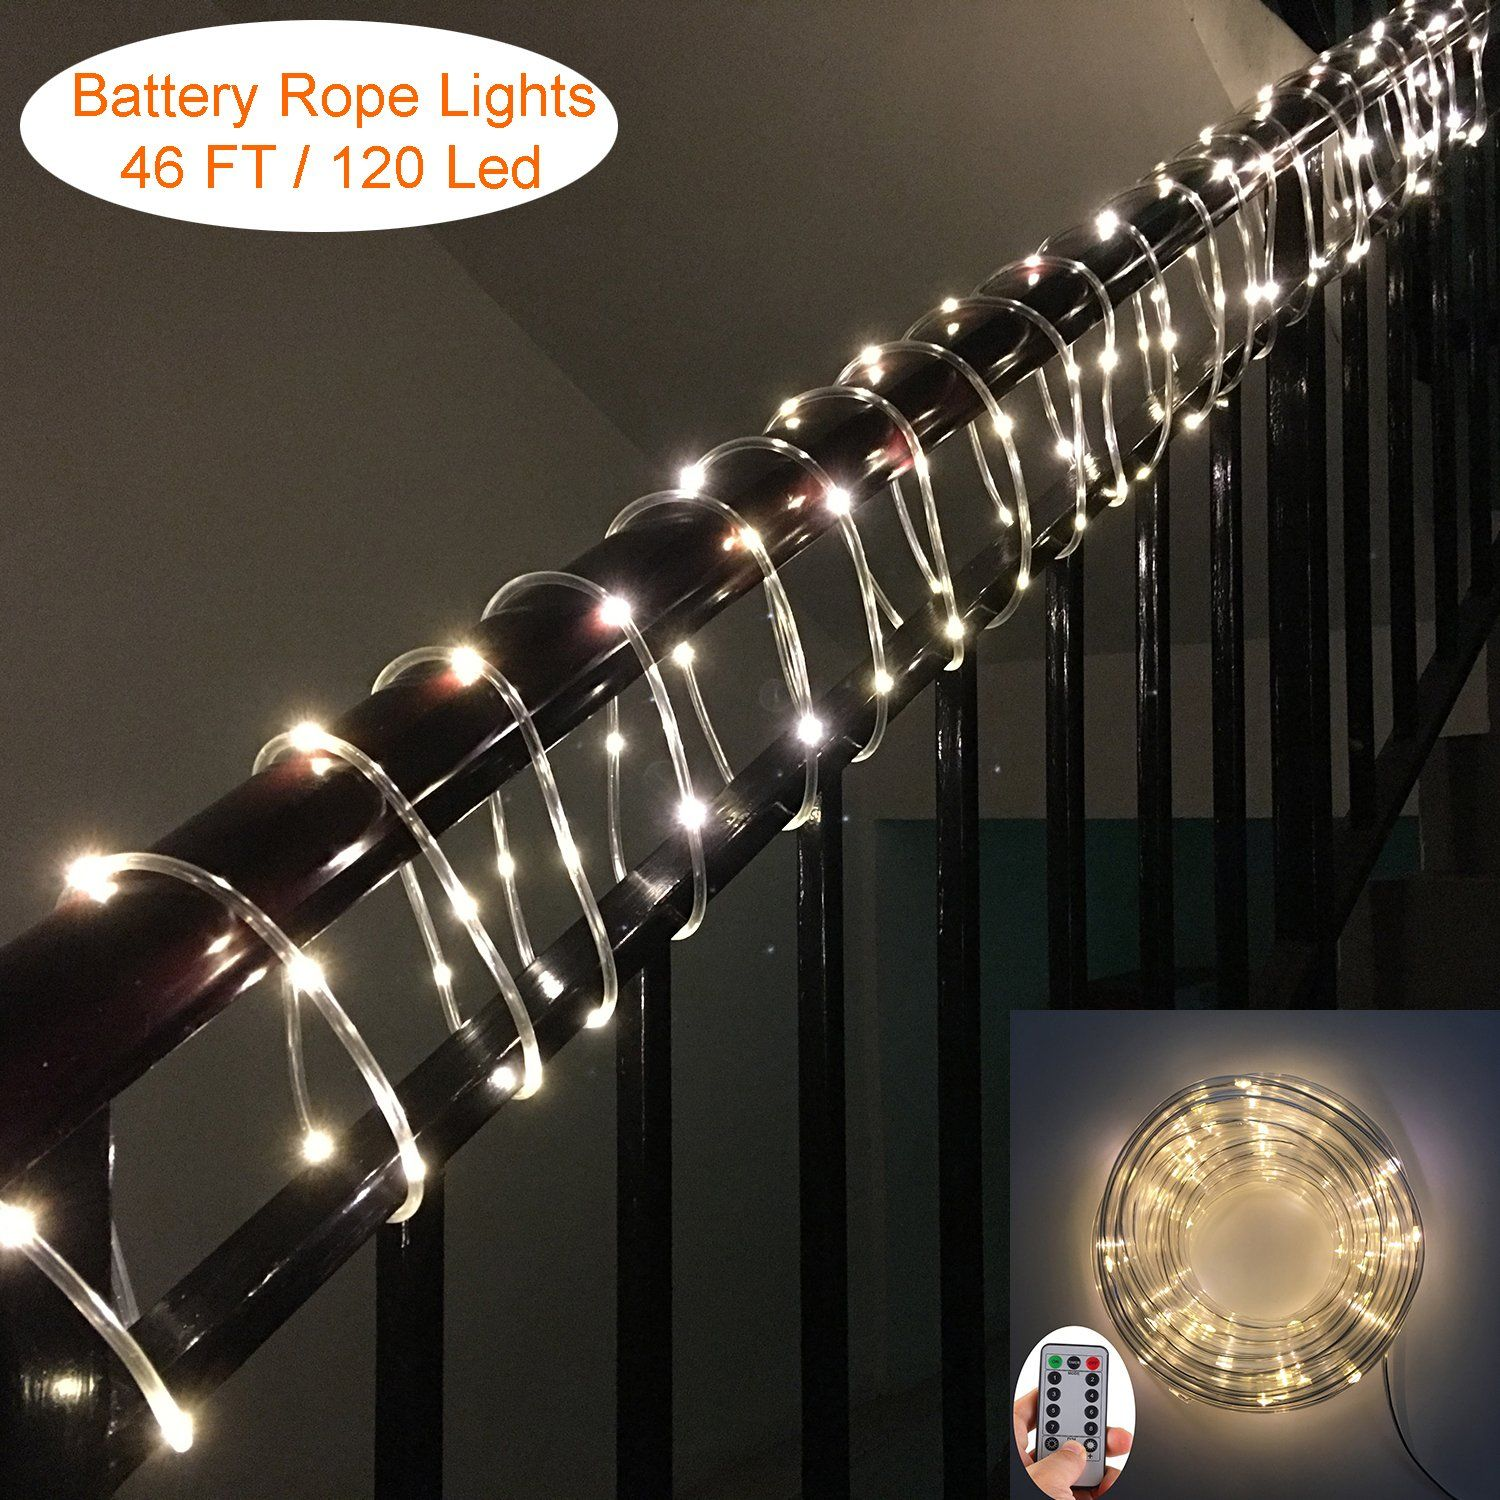 Led rope lights yesee 46ft120 led dimmable flexible tube string led rope lights yesee 46ft120 led dimmable flexible tube string lights battery powered aloadofball Image collections